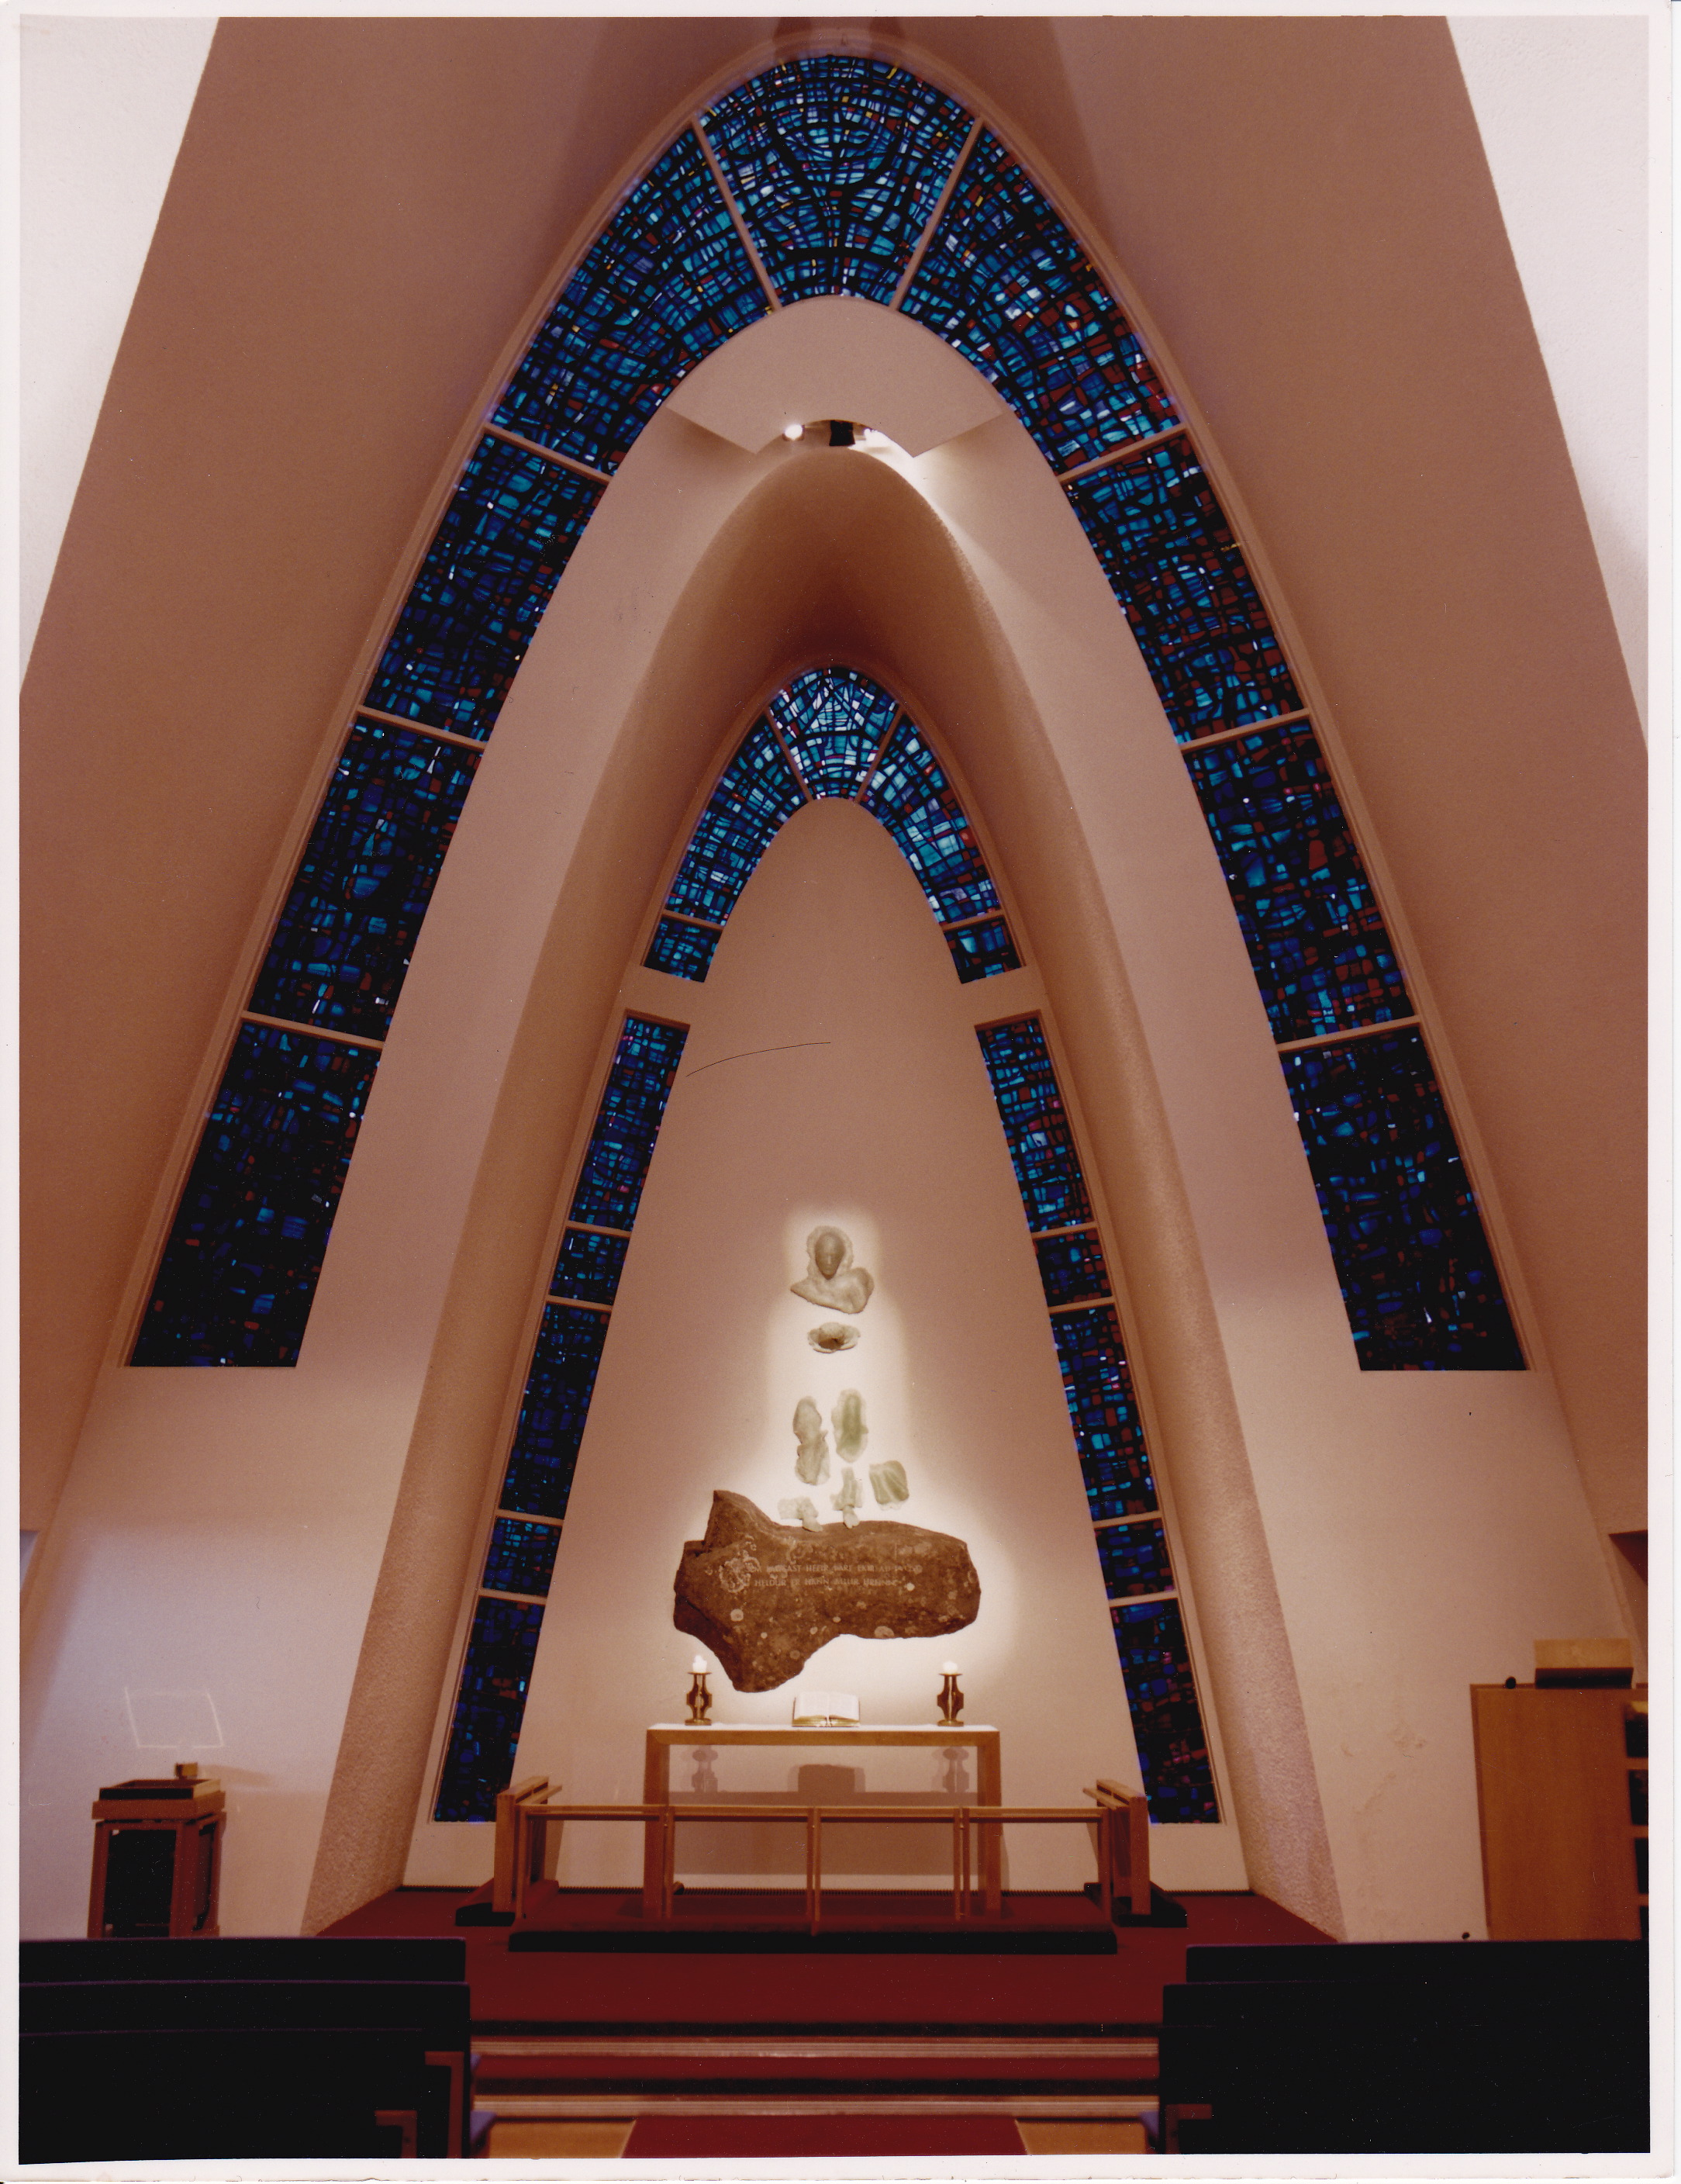 Altarpiece in Kópavogur Church. 1990